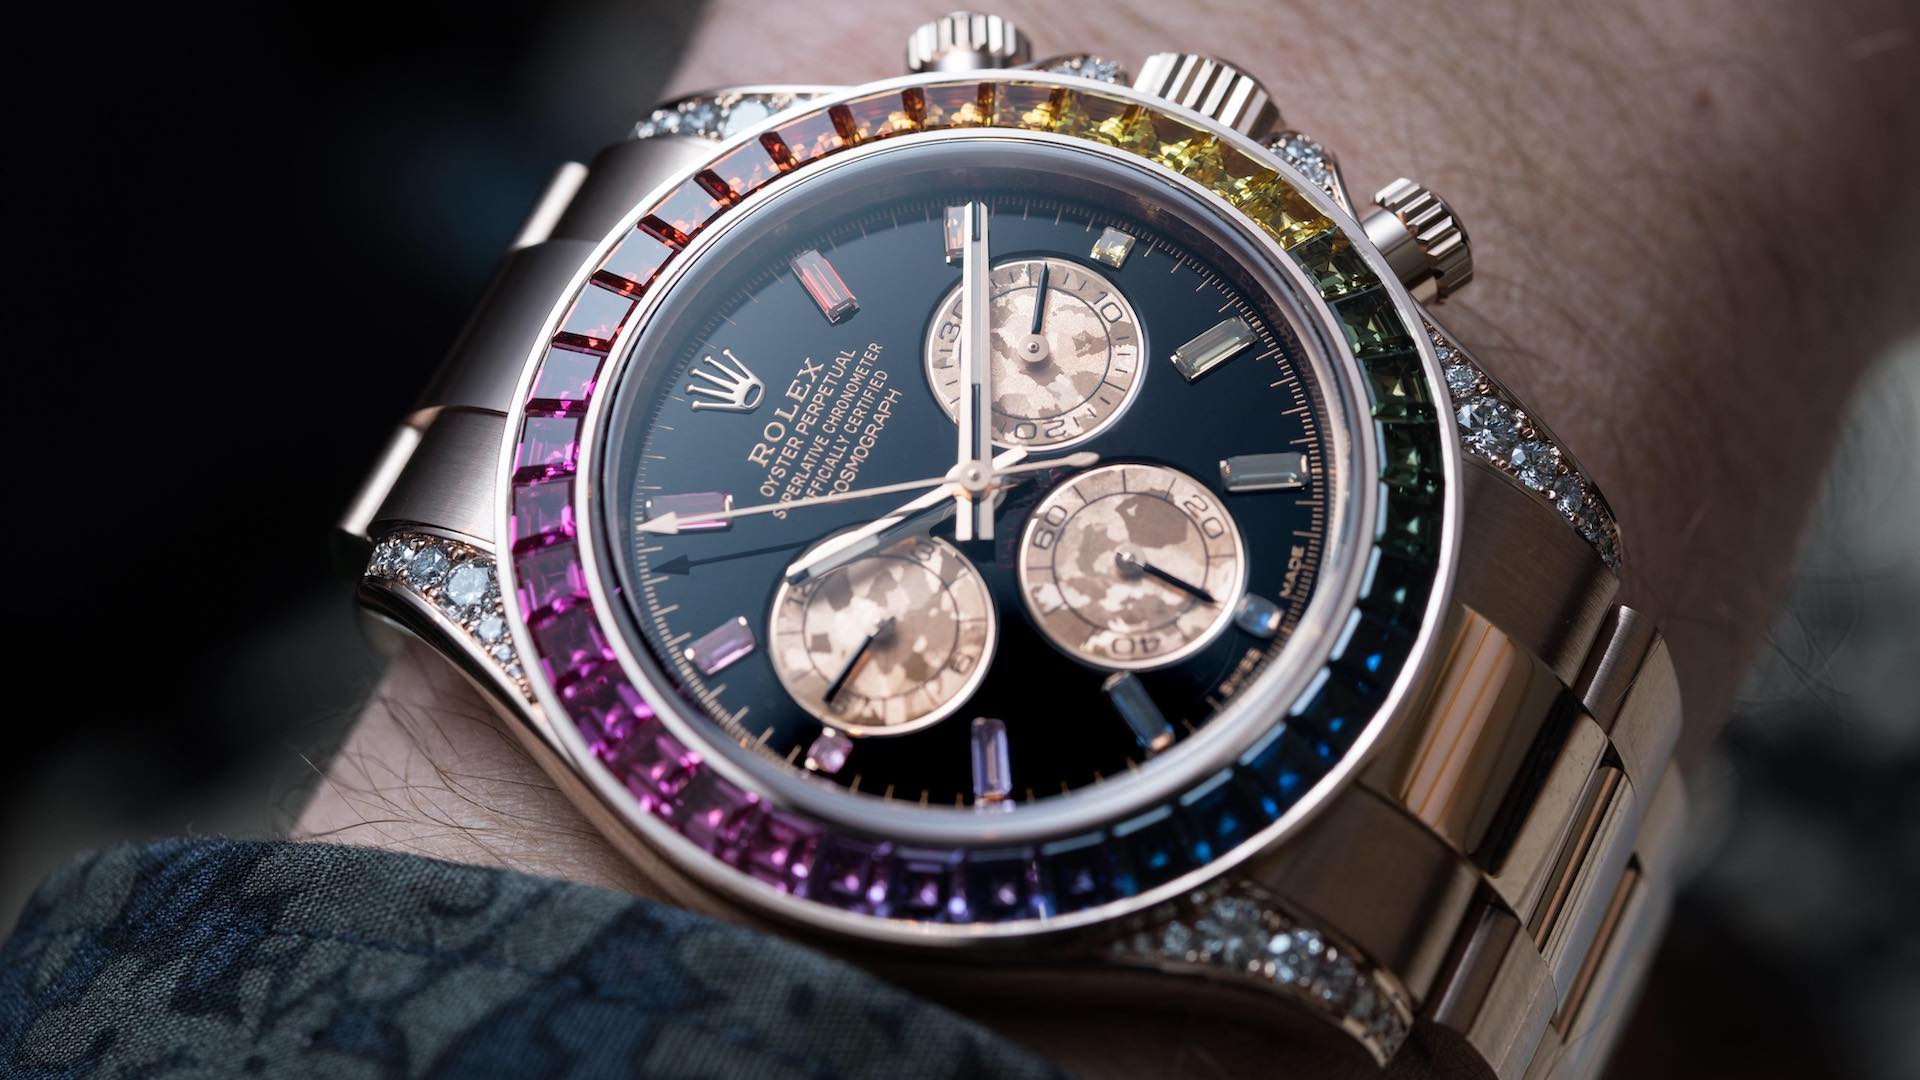 Today S Traditional Watch Industry Can T Exist Without Luxury Watches 1920x1080 Wallpaper Teahub Io